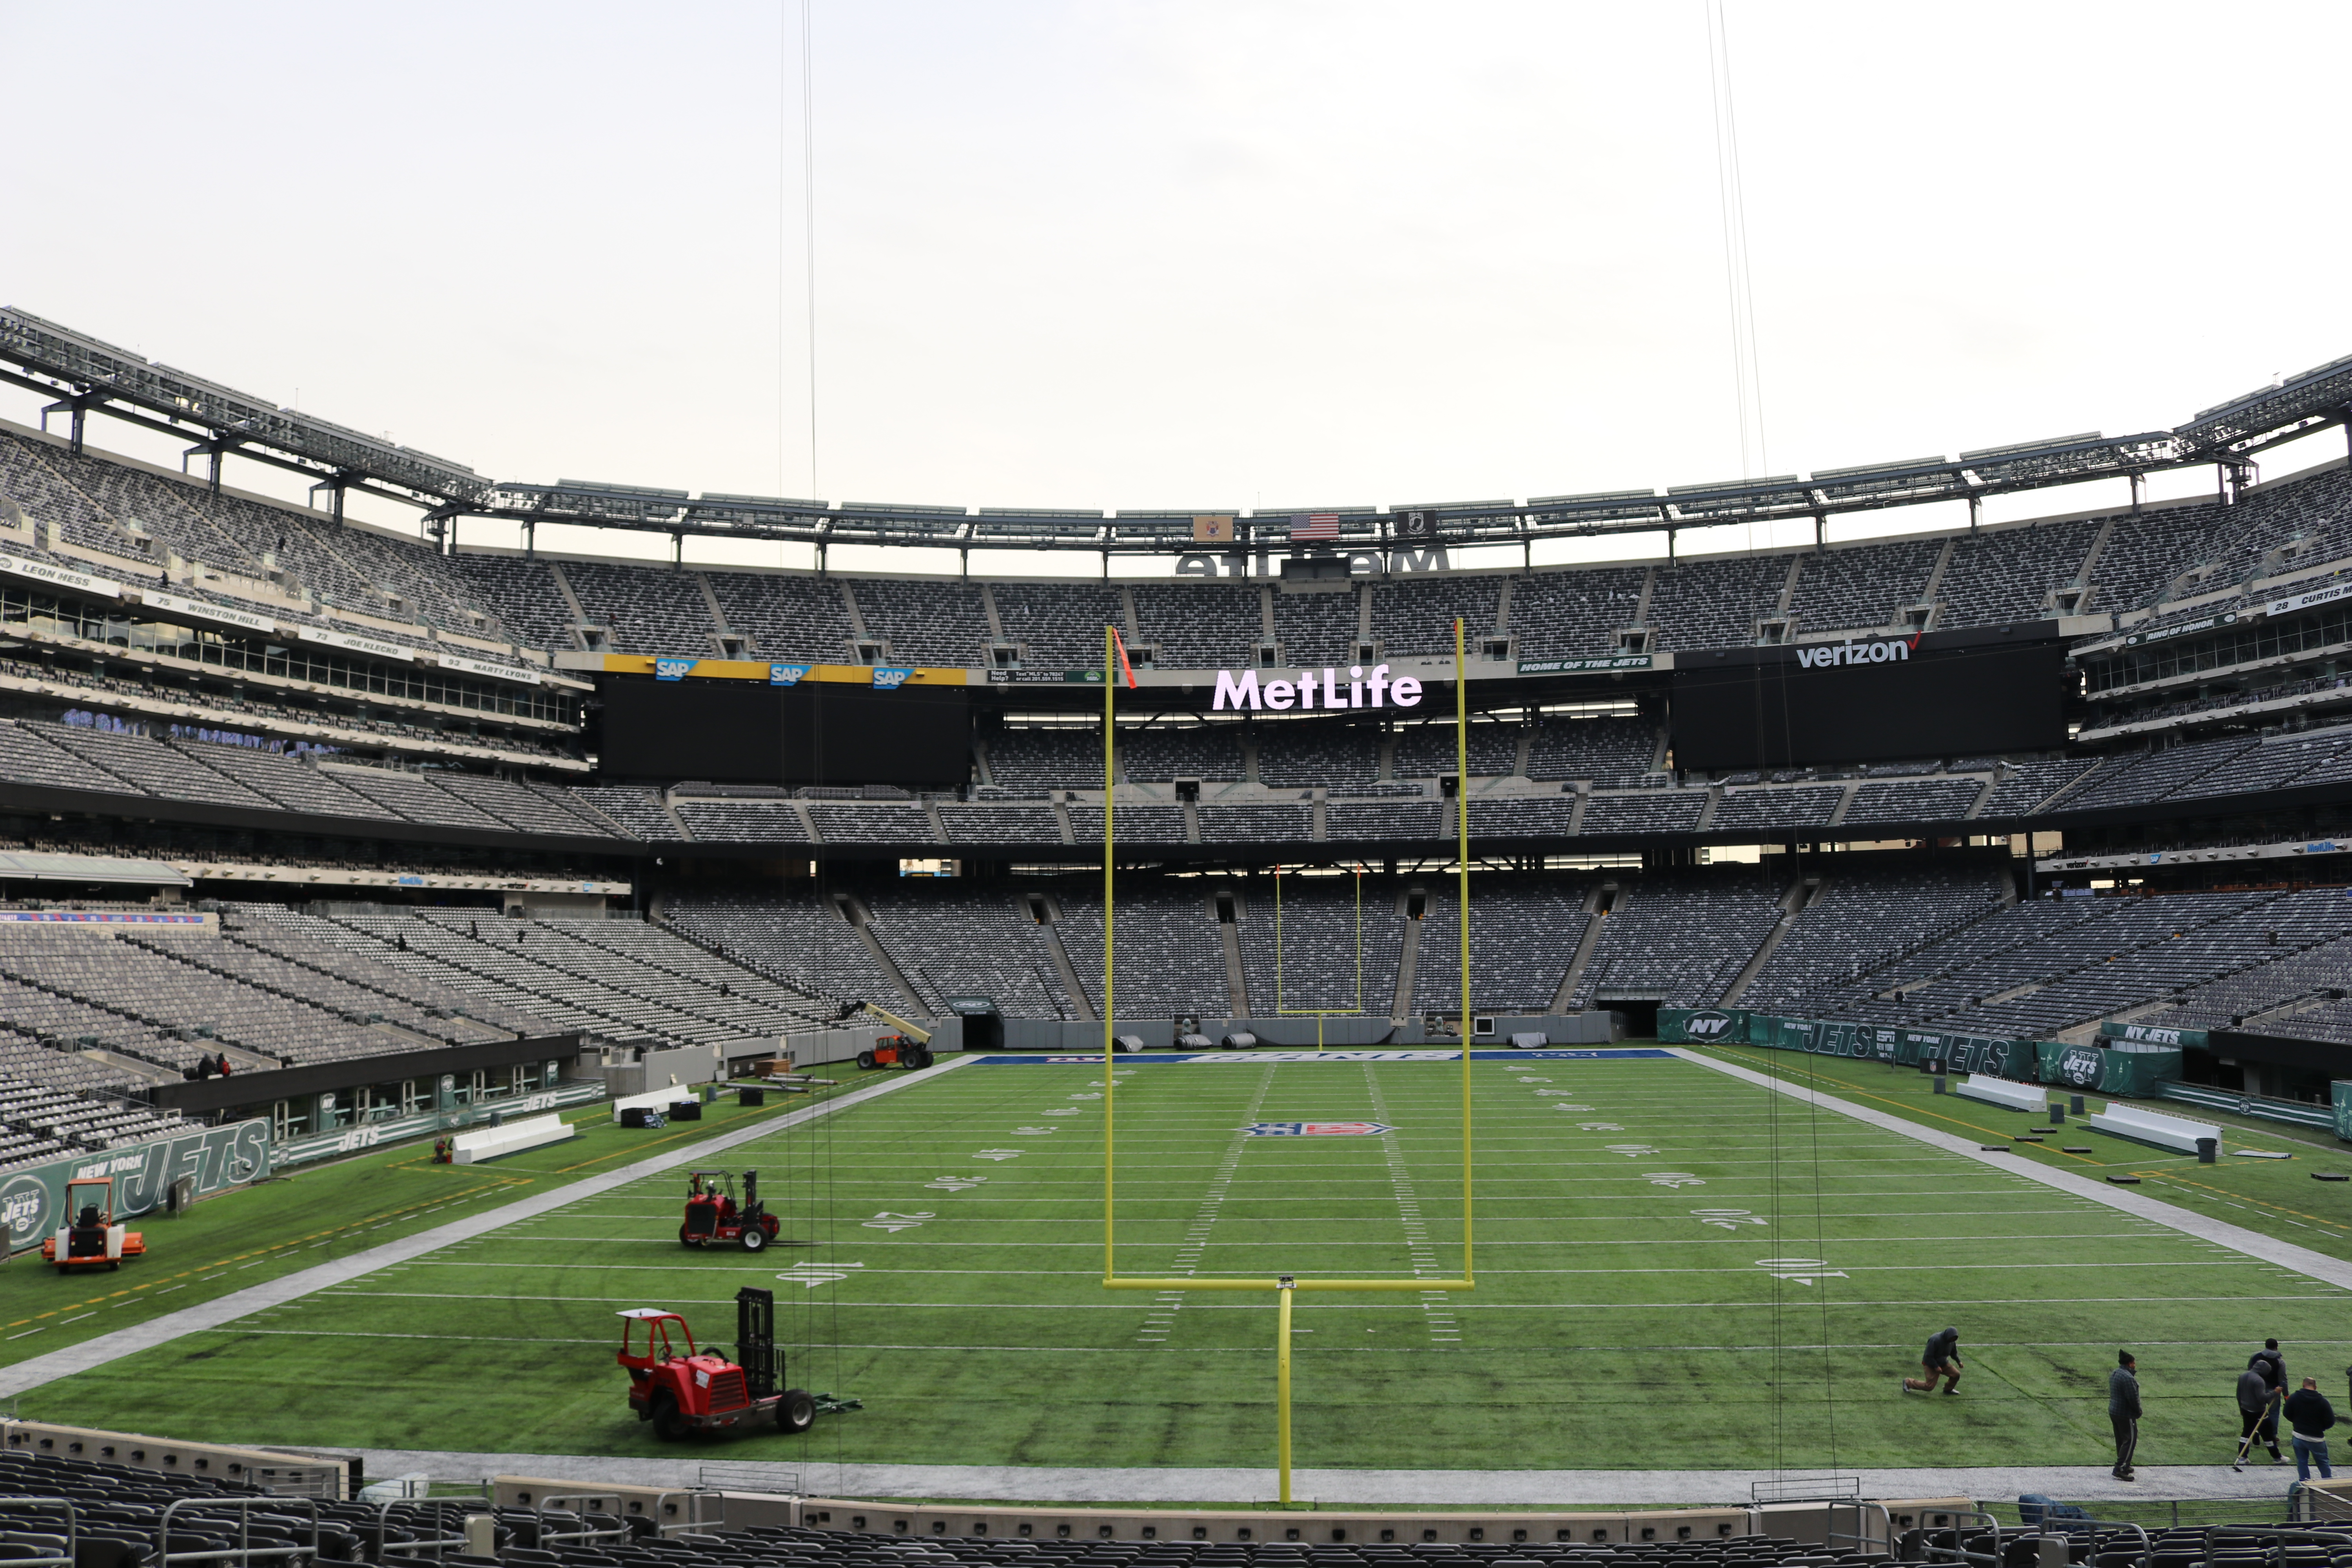 This photo provided by MetLife Stadium shows the field at MetLife Stadium in East Rutherford, N.J. With the New York Jets playing a Saturday night game and the Giants kicking off early Sunday afternoon, MetLife Stadium will go with an interesting look for